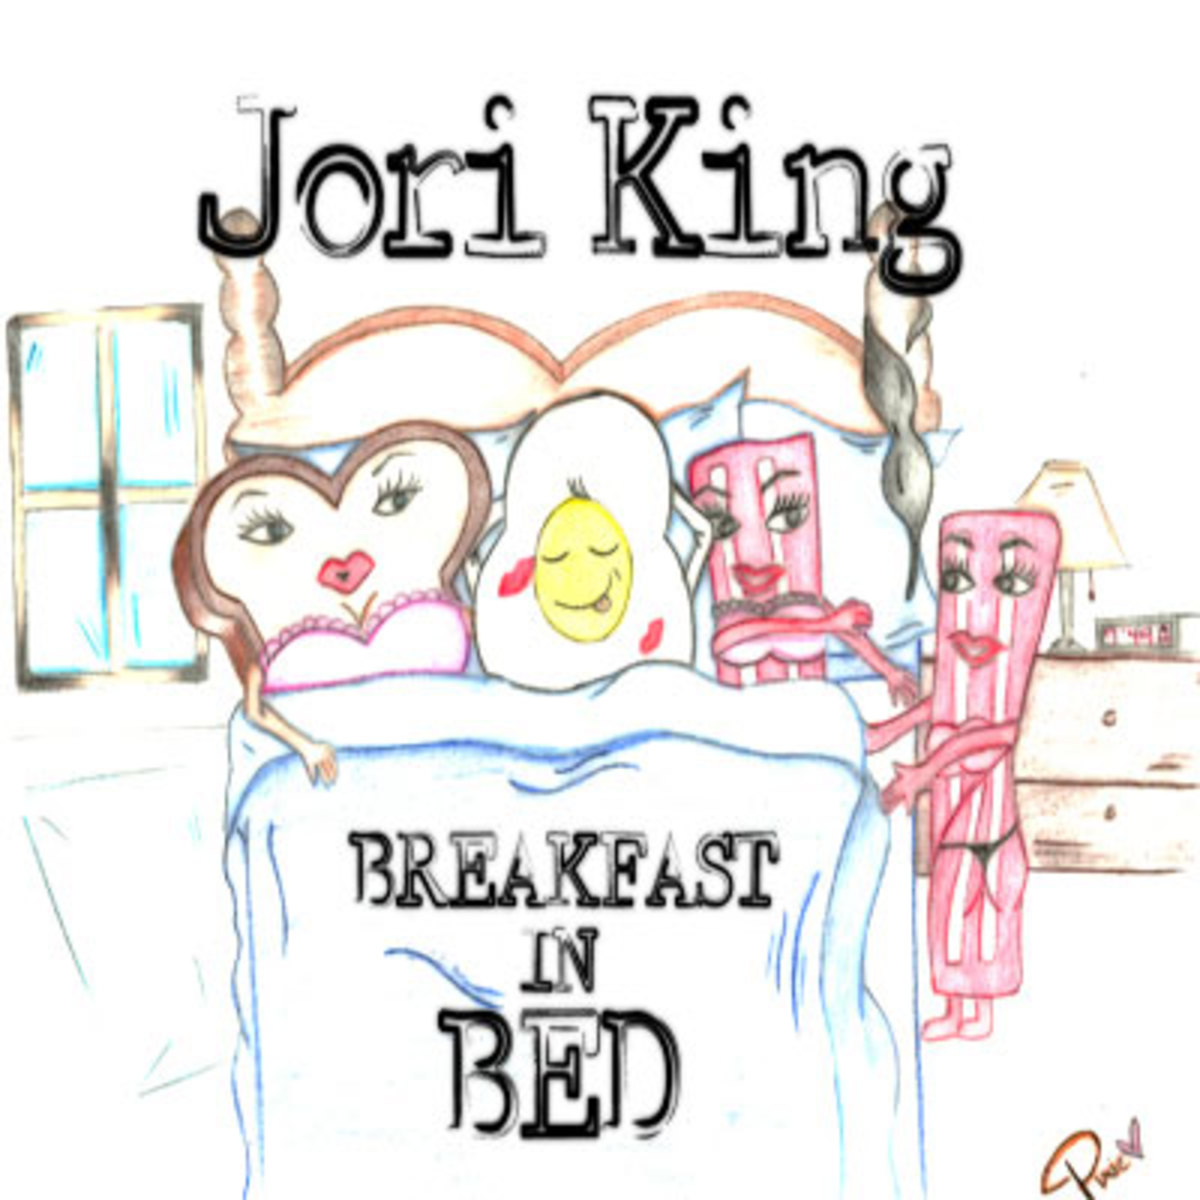 joriking-breakfast.jpg